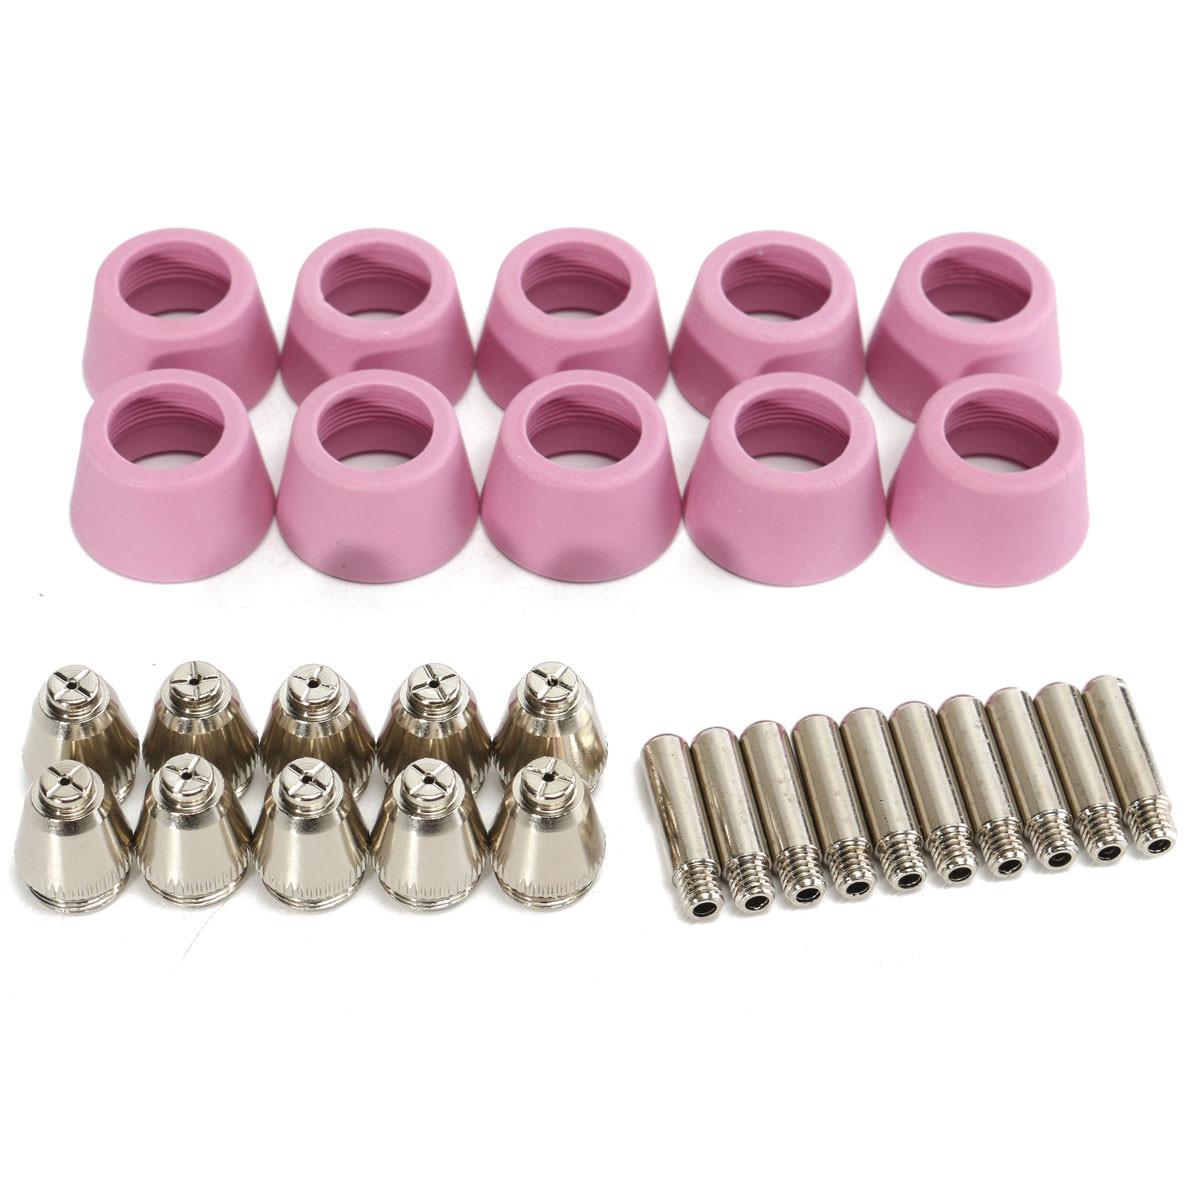 30PCS Plasma Cutter Torch Electrodes Tips Nozzles Cup For SG-55 AG-60 Accessory